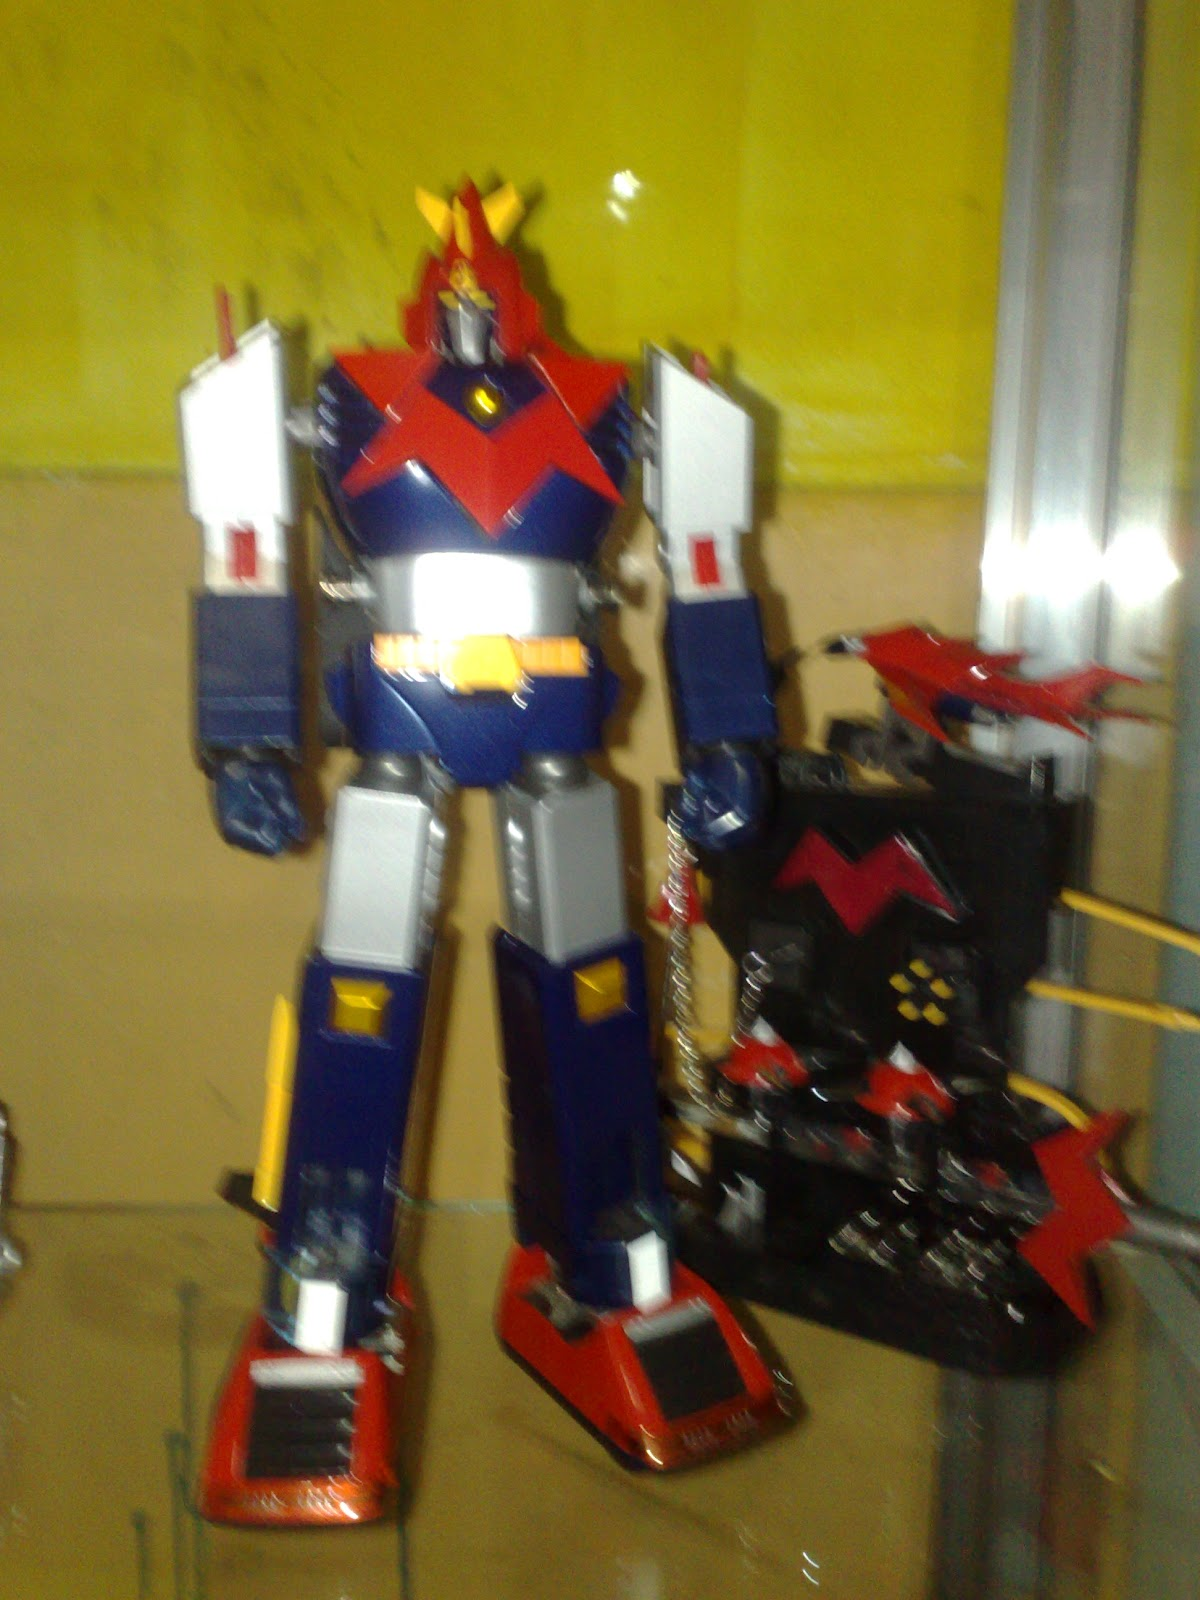 Robot For Big Boys Toys : Big boys toy advocate toys for the super robots